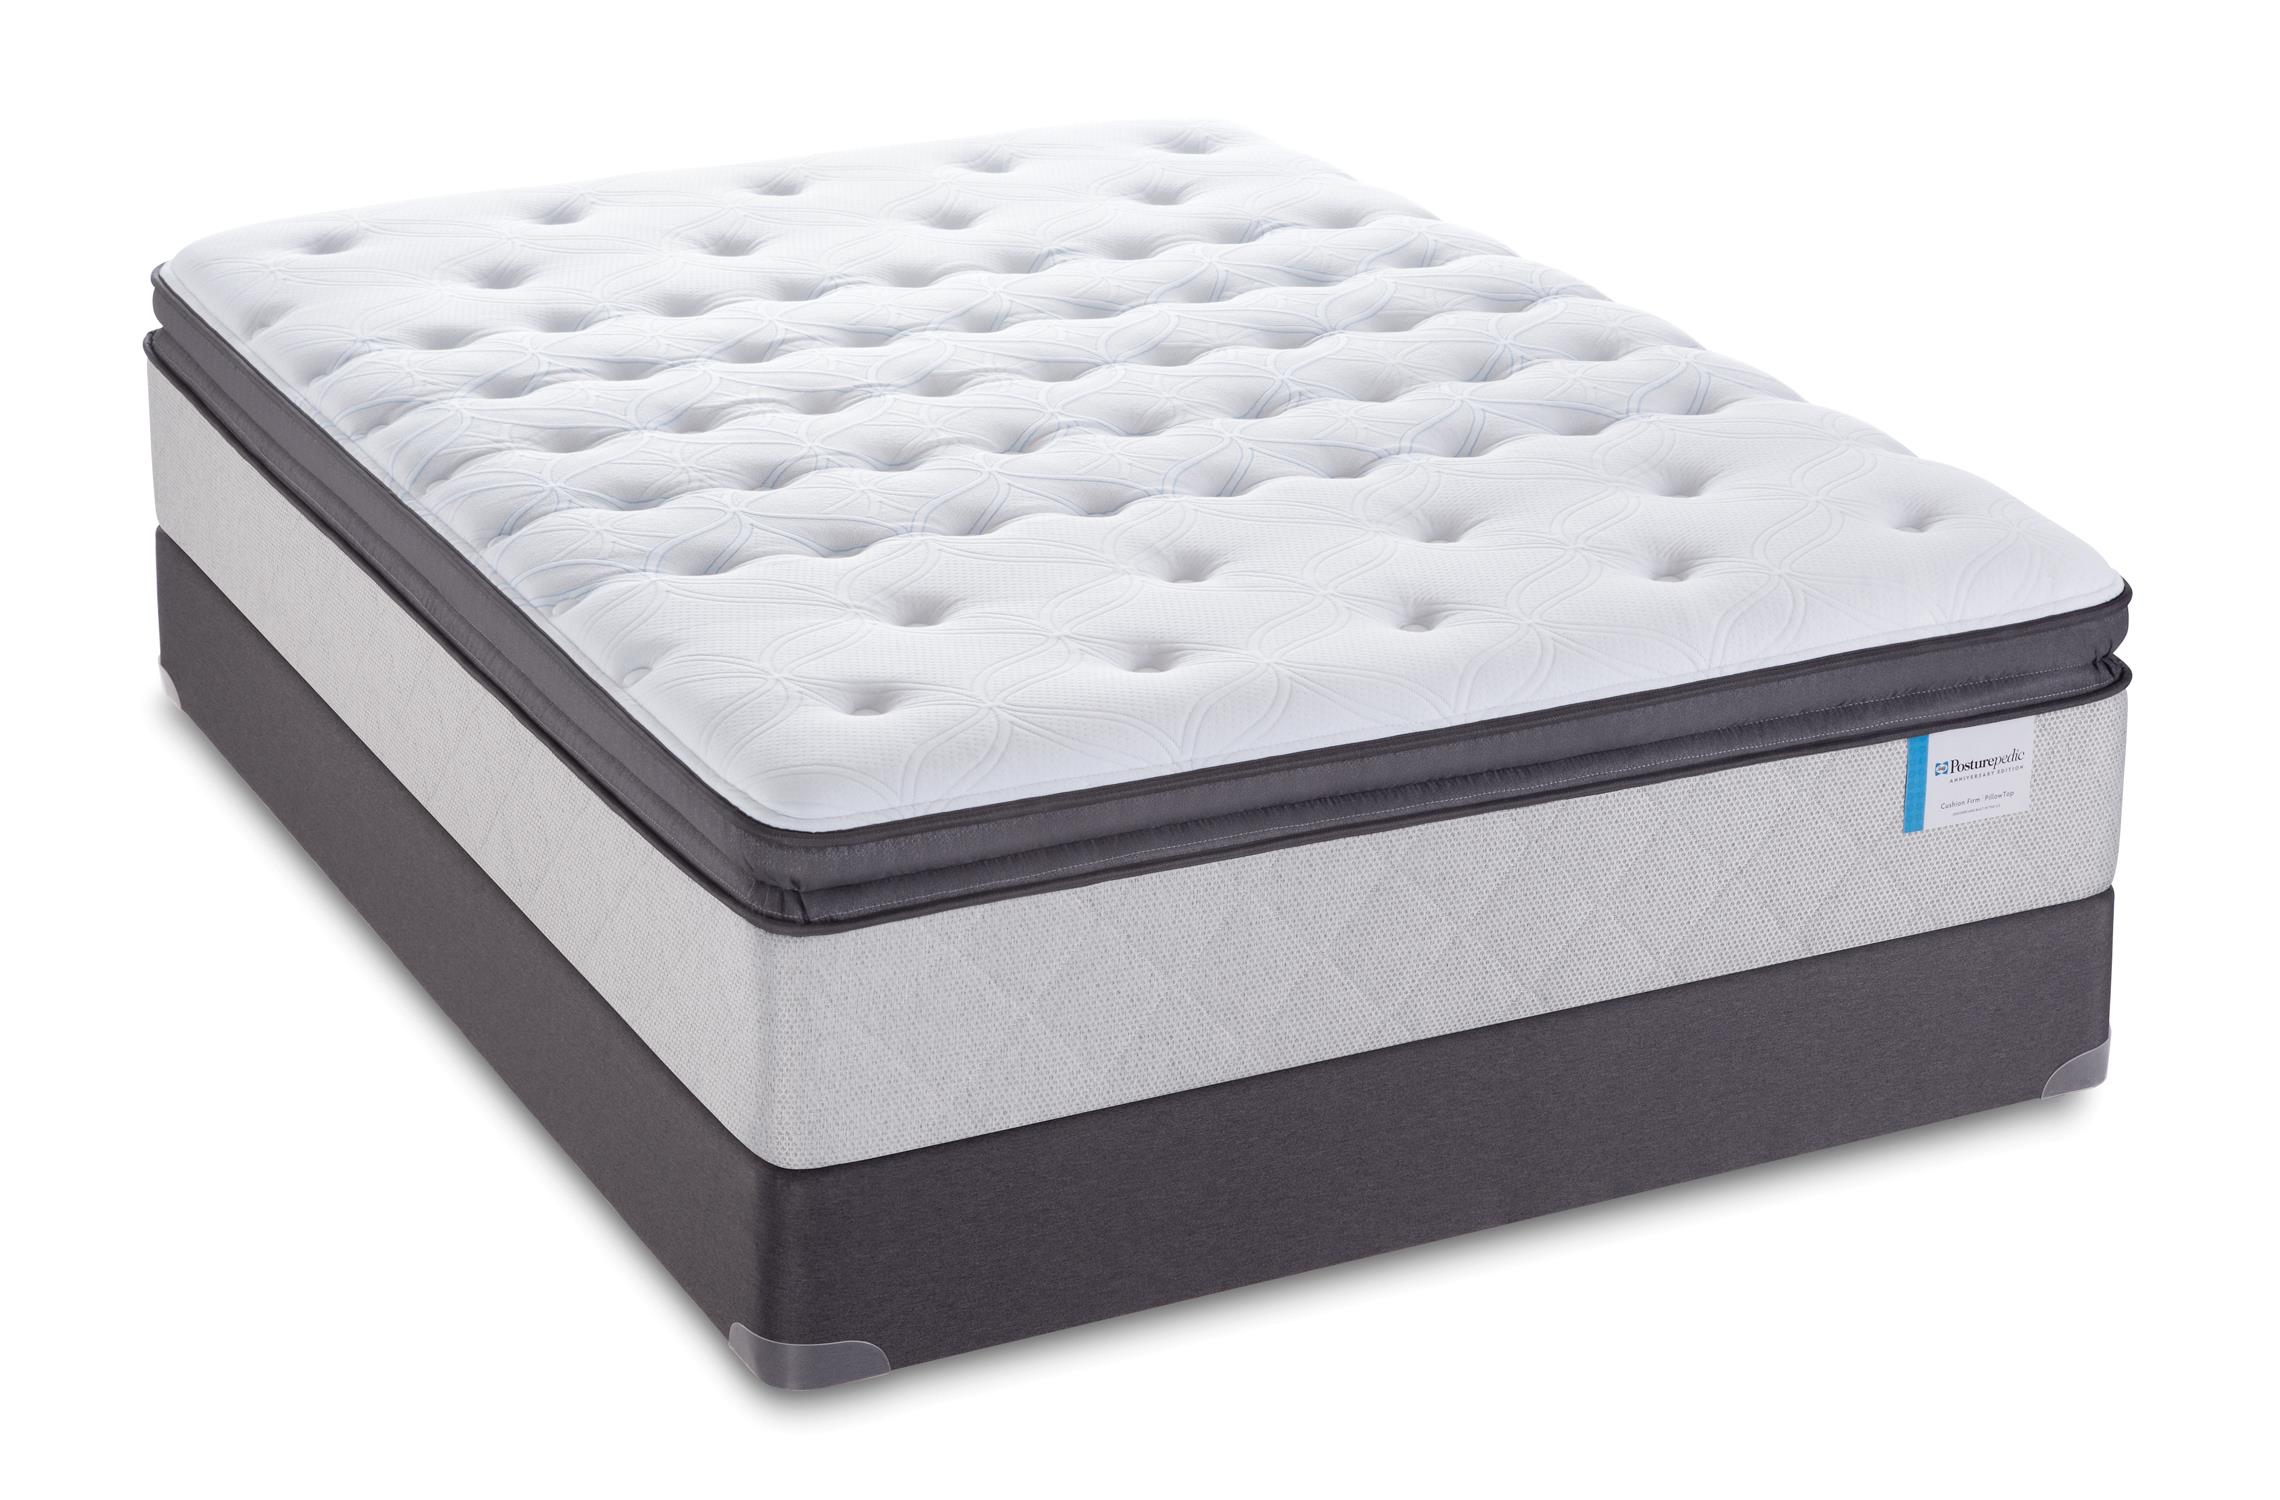 "Sealy Posturepedic 65 Year Anniversary Edition Queen 14"" Pillow Top Mattress Set, LP - Item Number: Pillowtop14-Q+SSLPFndtn-Q"